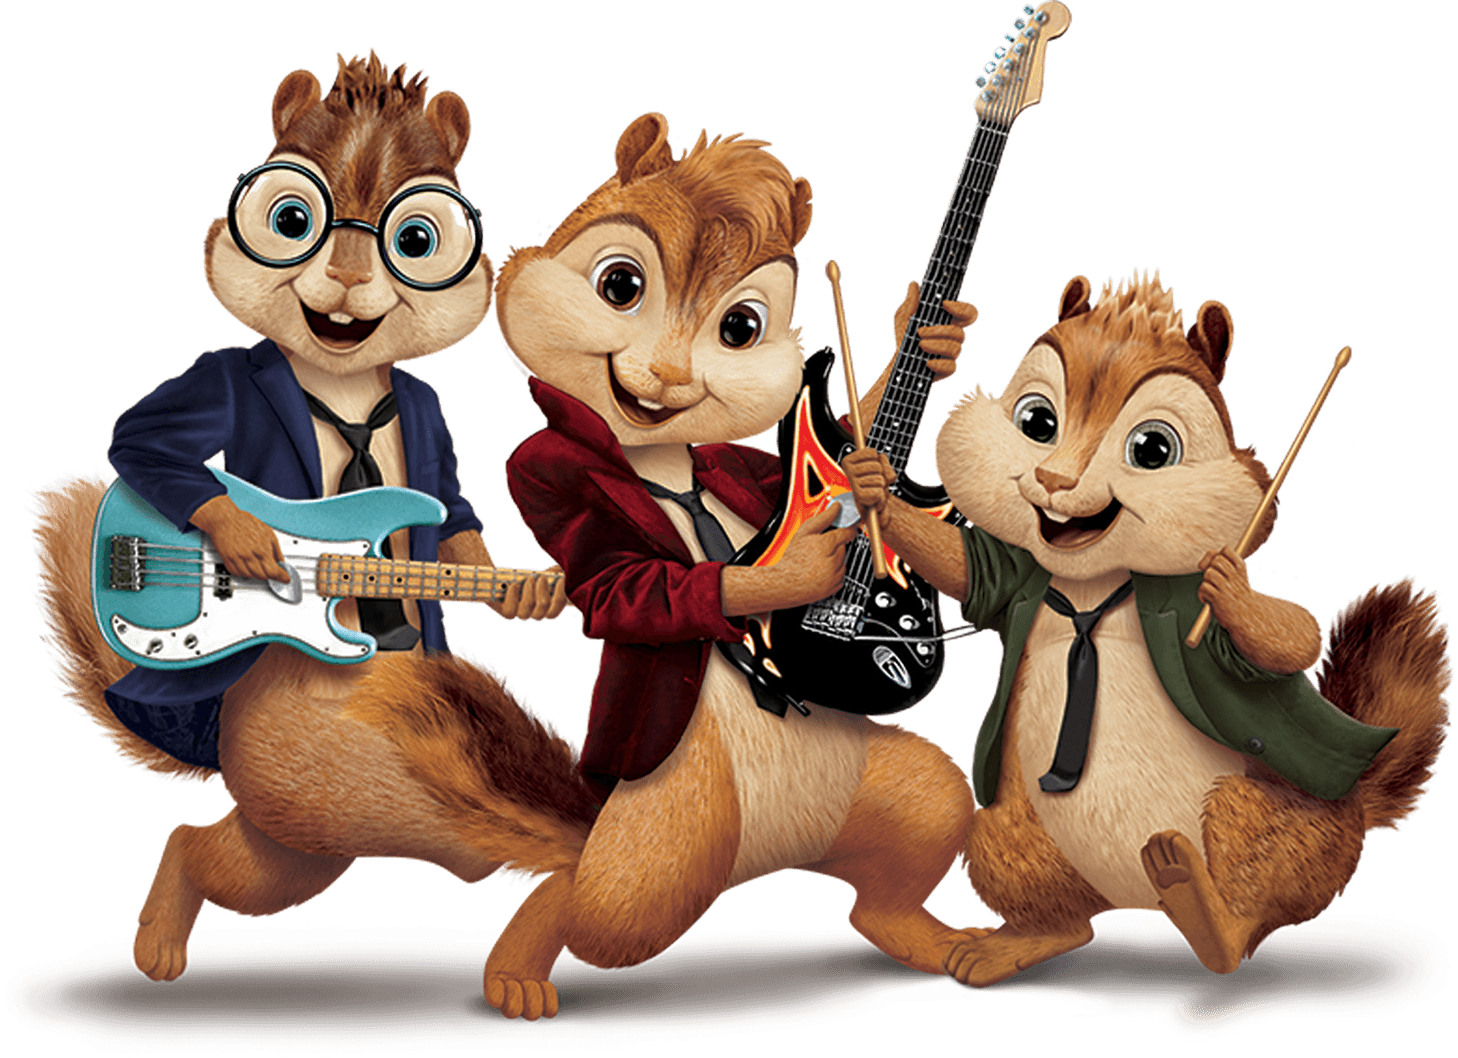 Chipmunk clipart dancing. Alvin and the chipmunks